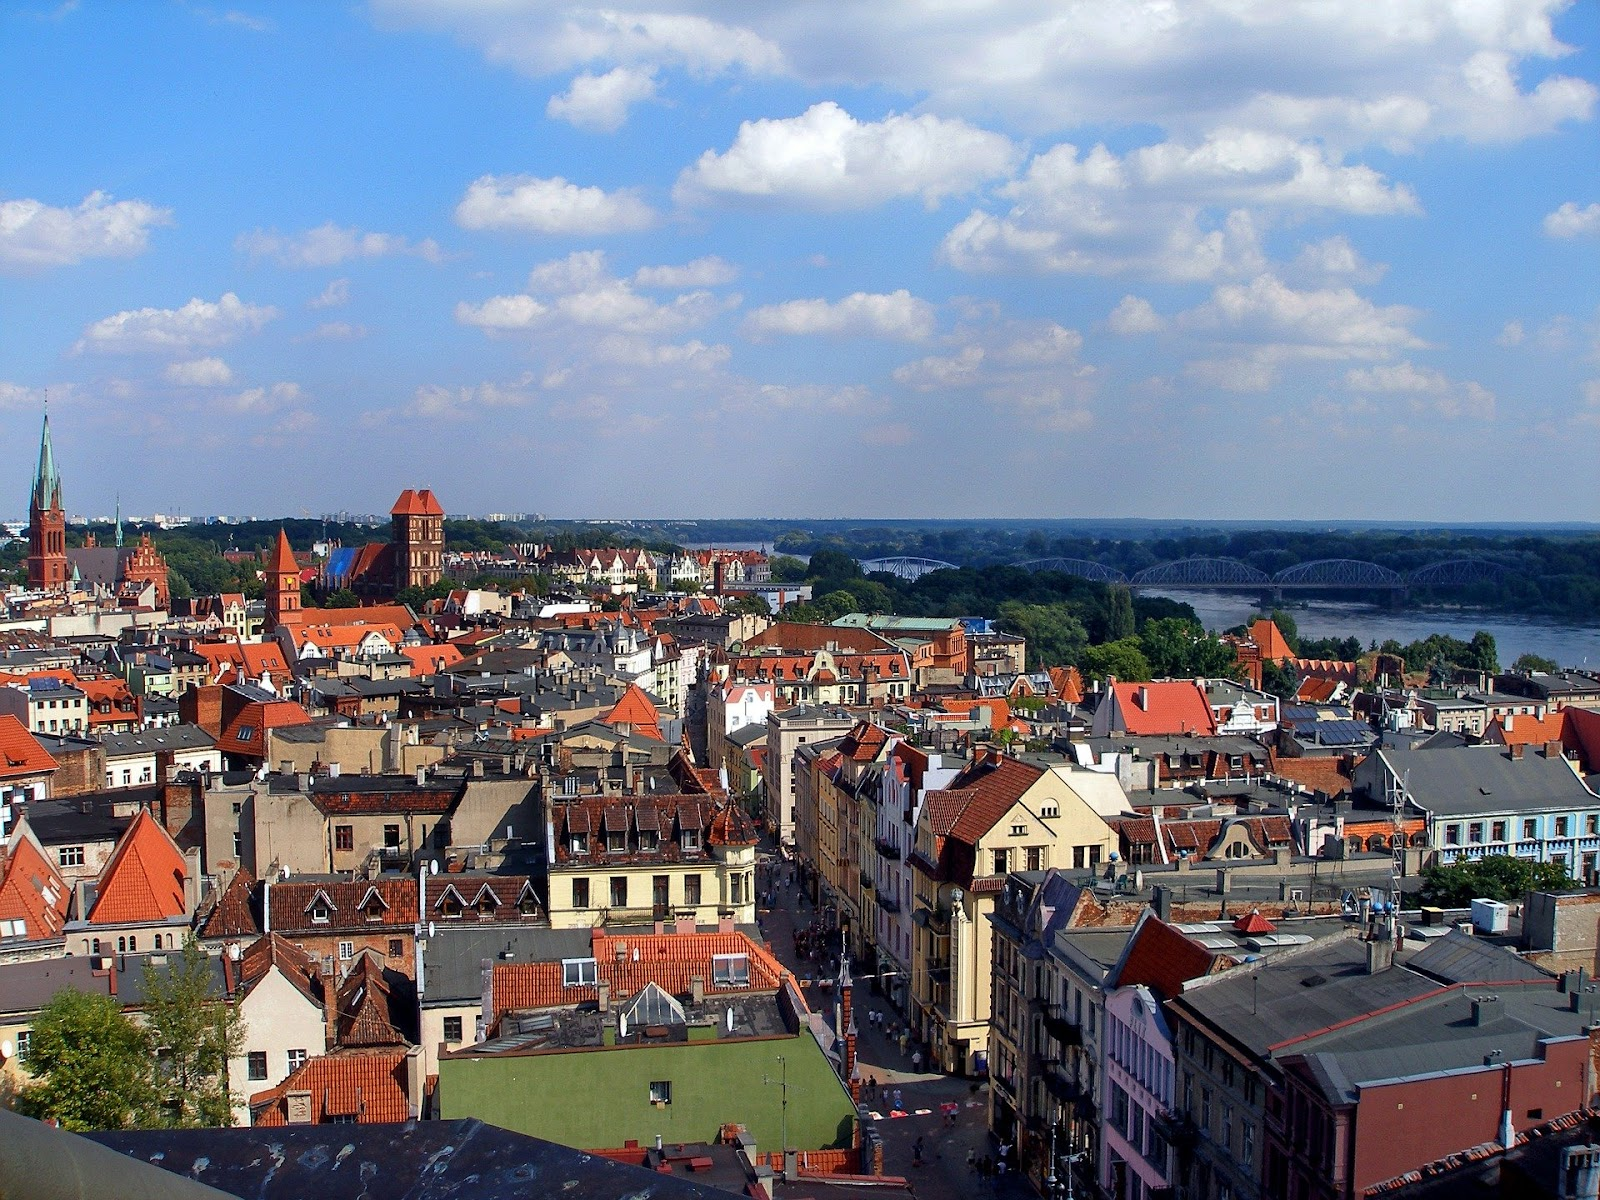 torun old town colorful medieval buildings on a sunny day vistula river in background